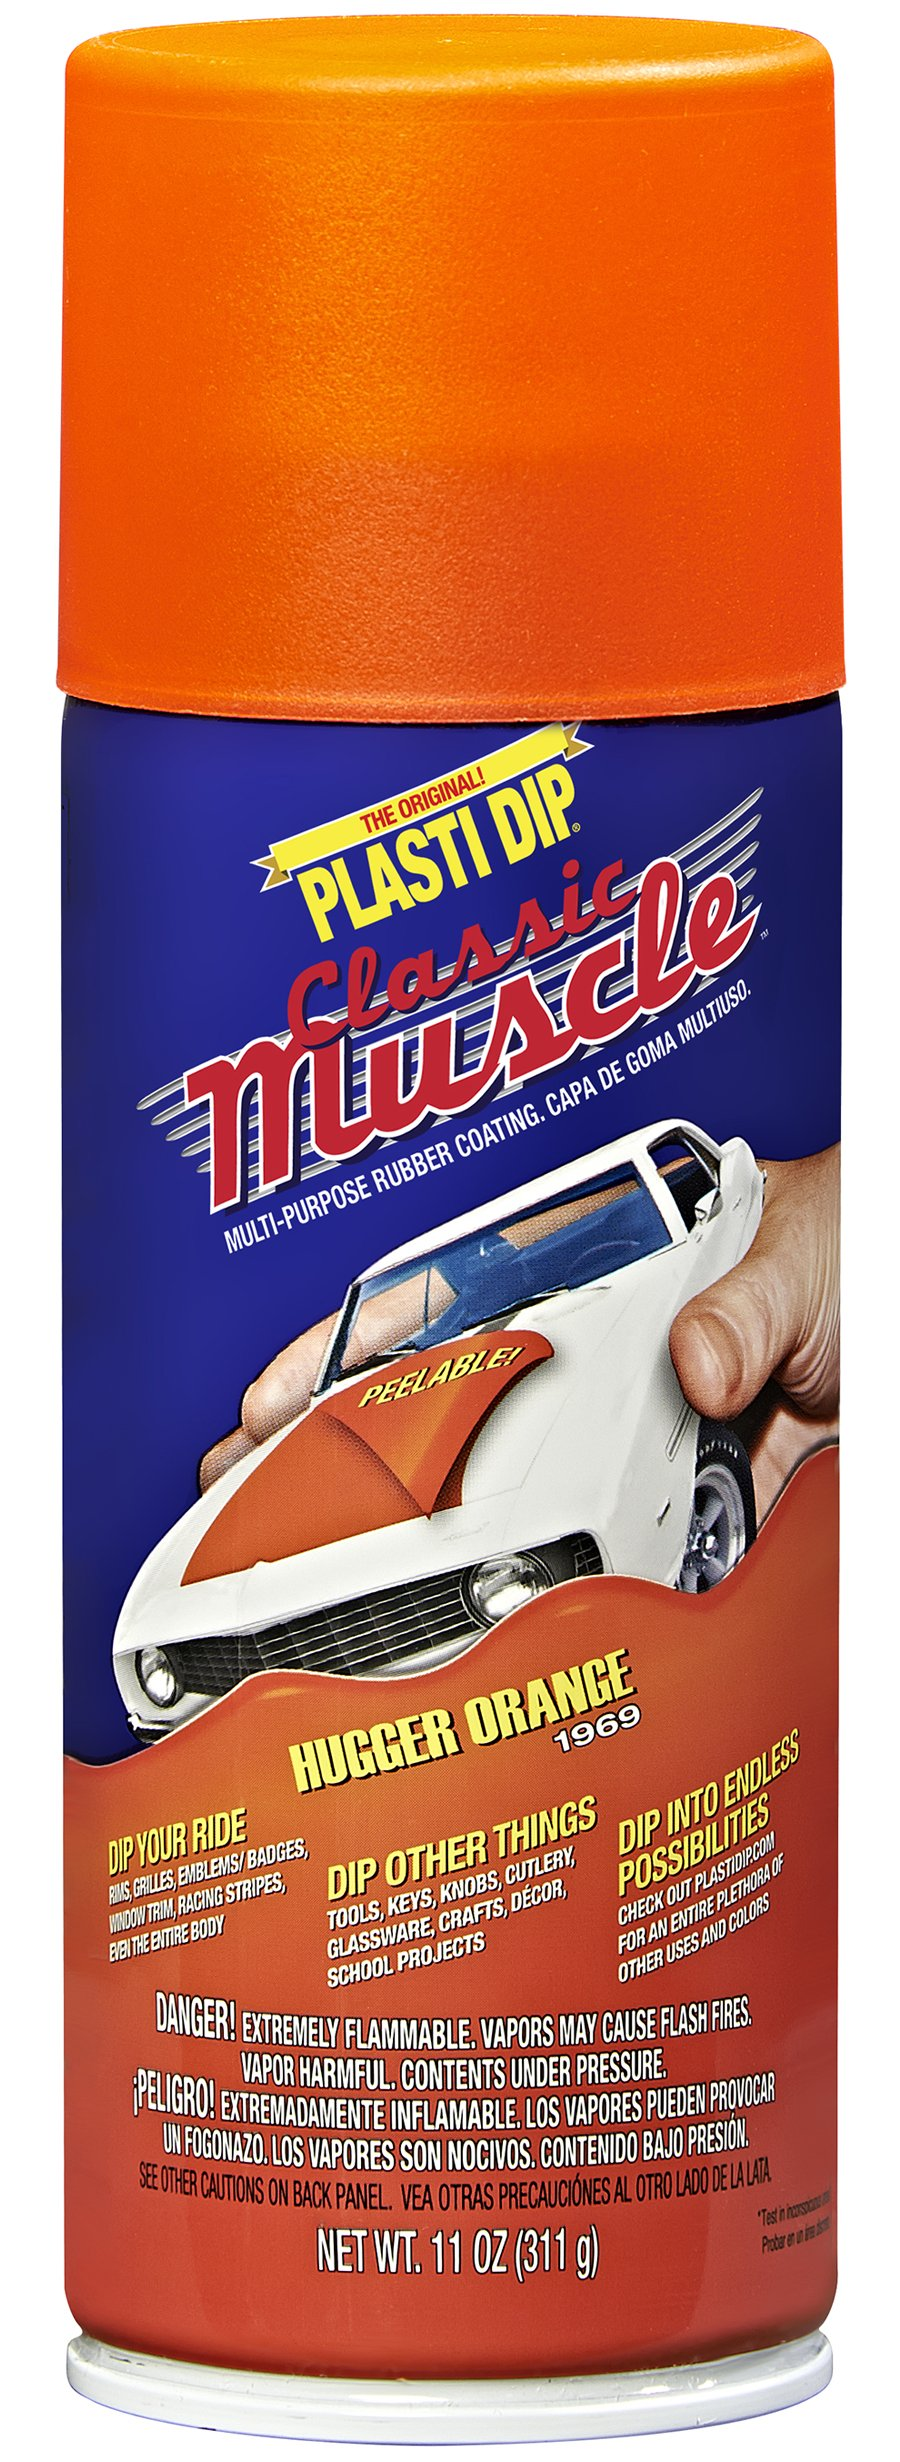 Performix 11307-6 Hugger Orange Classic Muscle Car Rubber Coating, 11 oz, 6 Pack by Plasti Dip